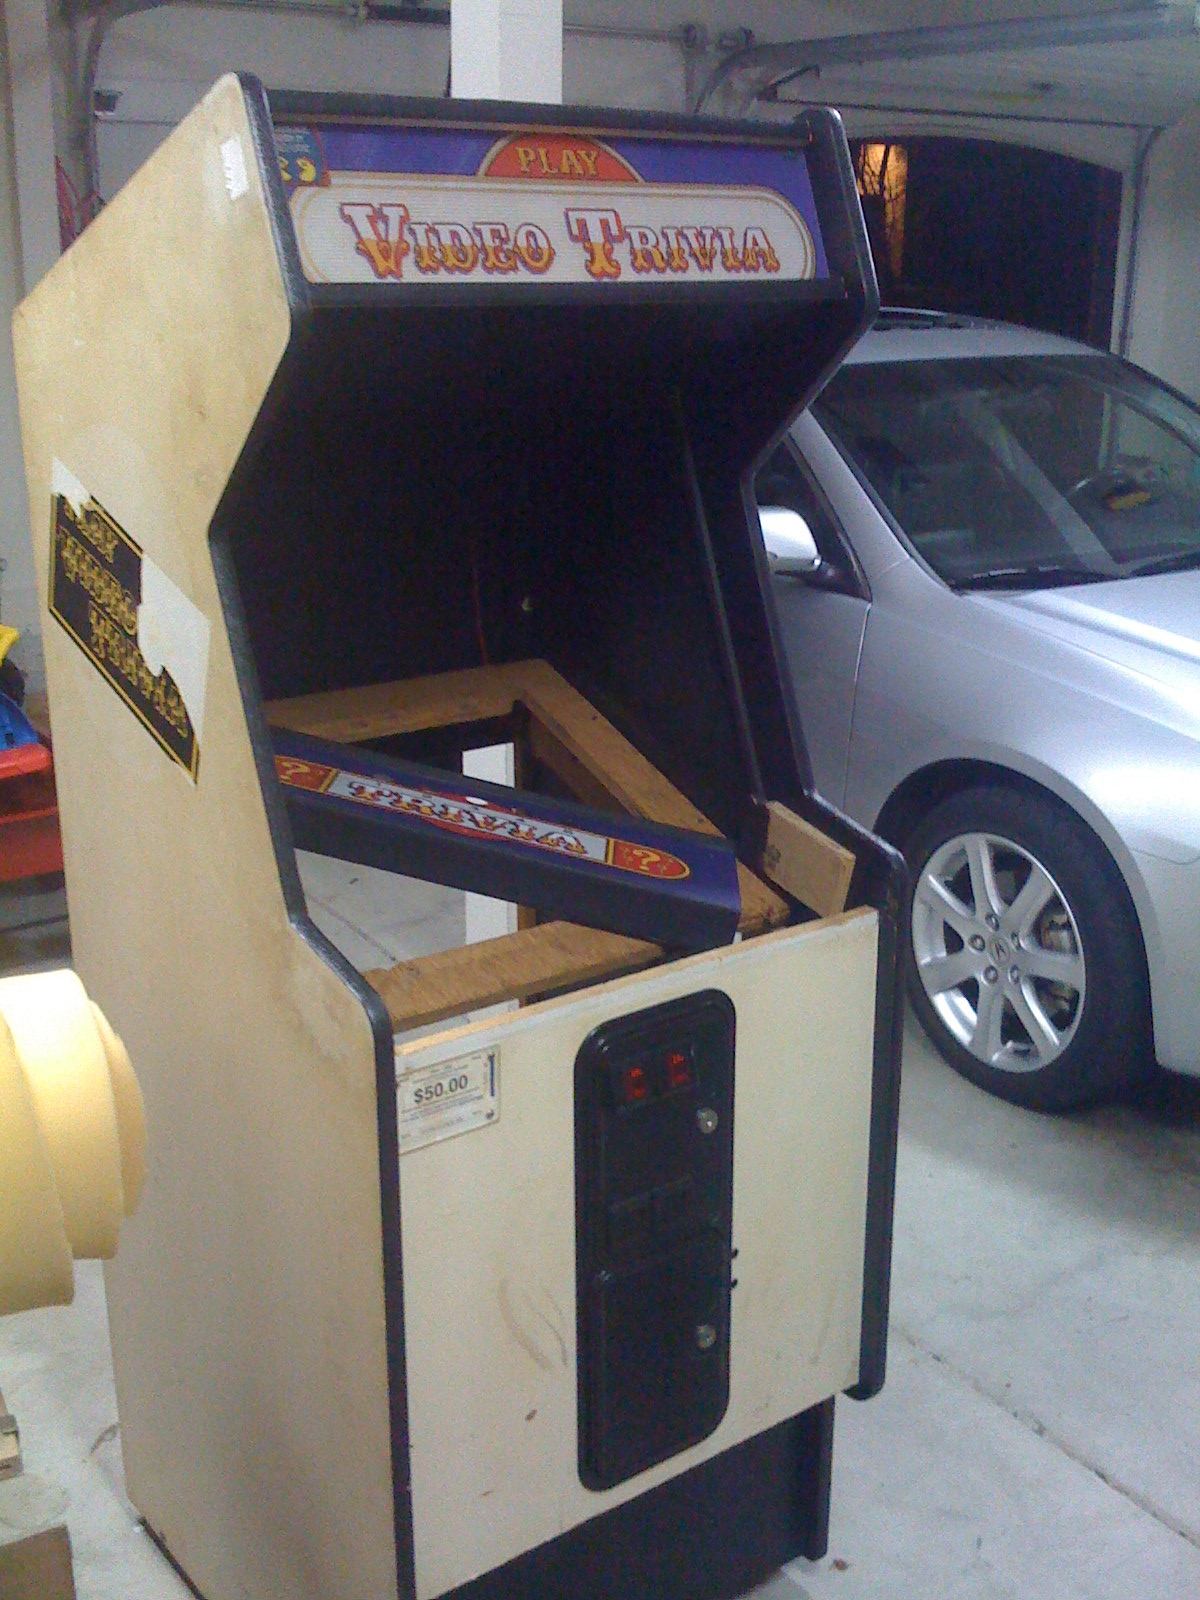 Building your own arcade cabinet for geeks part 1 the cabinet img0034 img0035 malvernweather Gallery